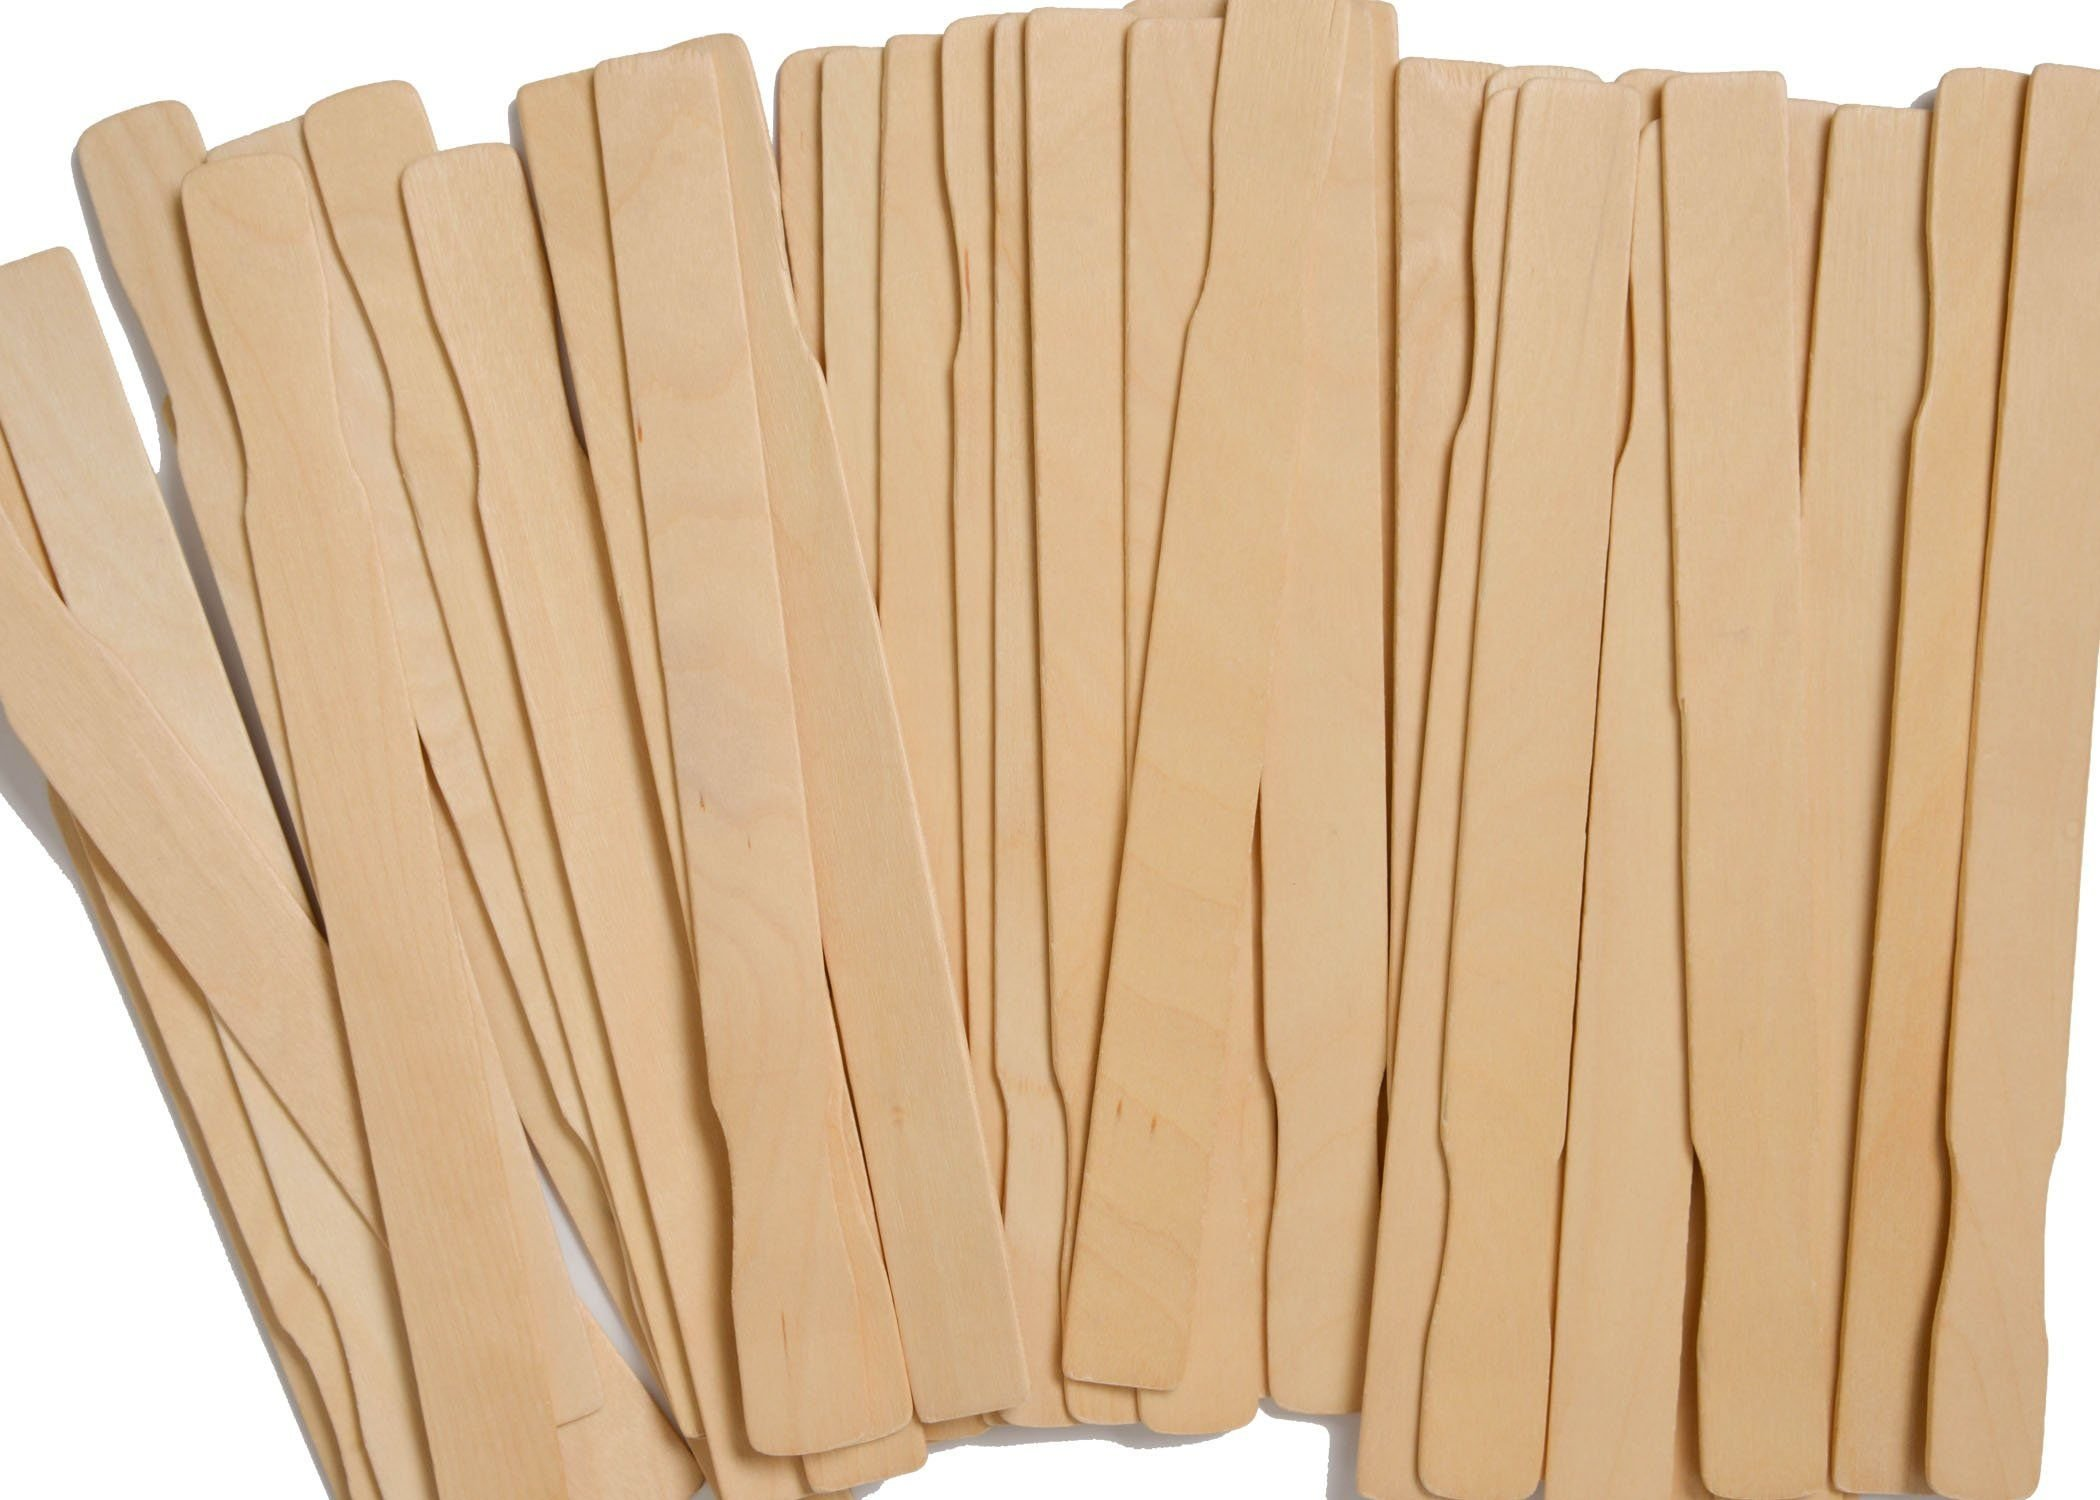 Perfect Stix 14'' Wooden Paint Paddle Stirrer Sticks (Pack of 1000)